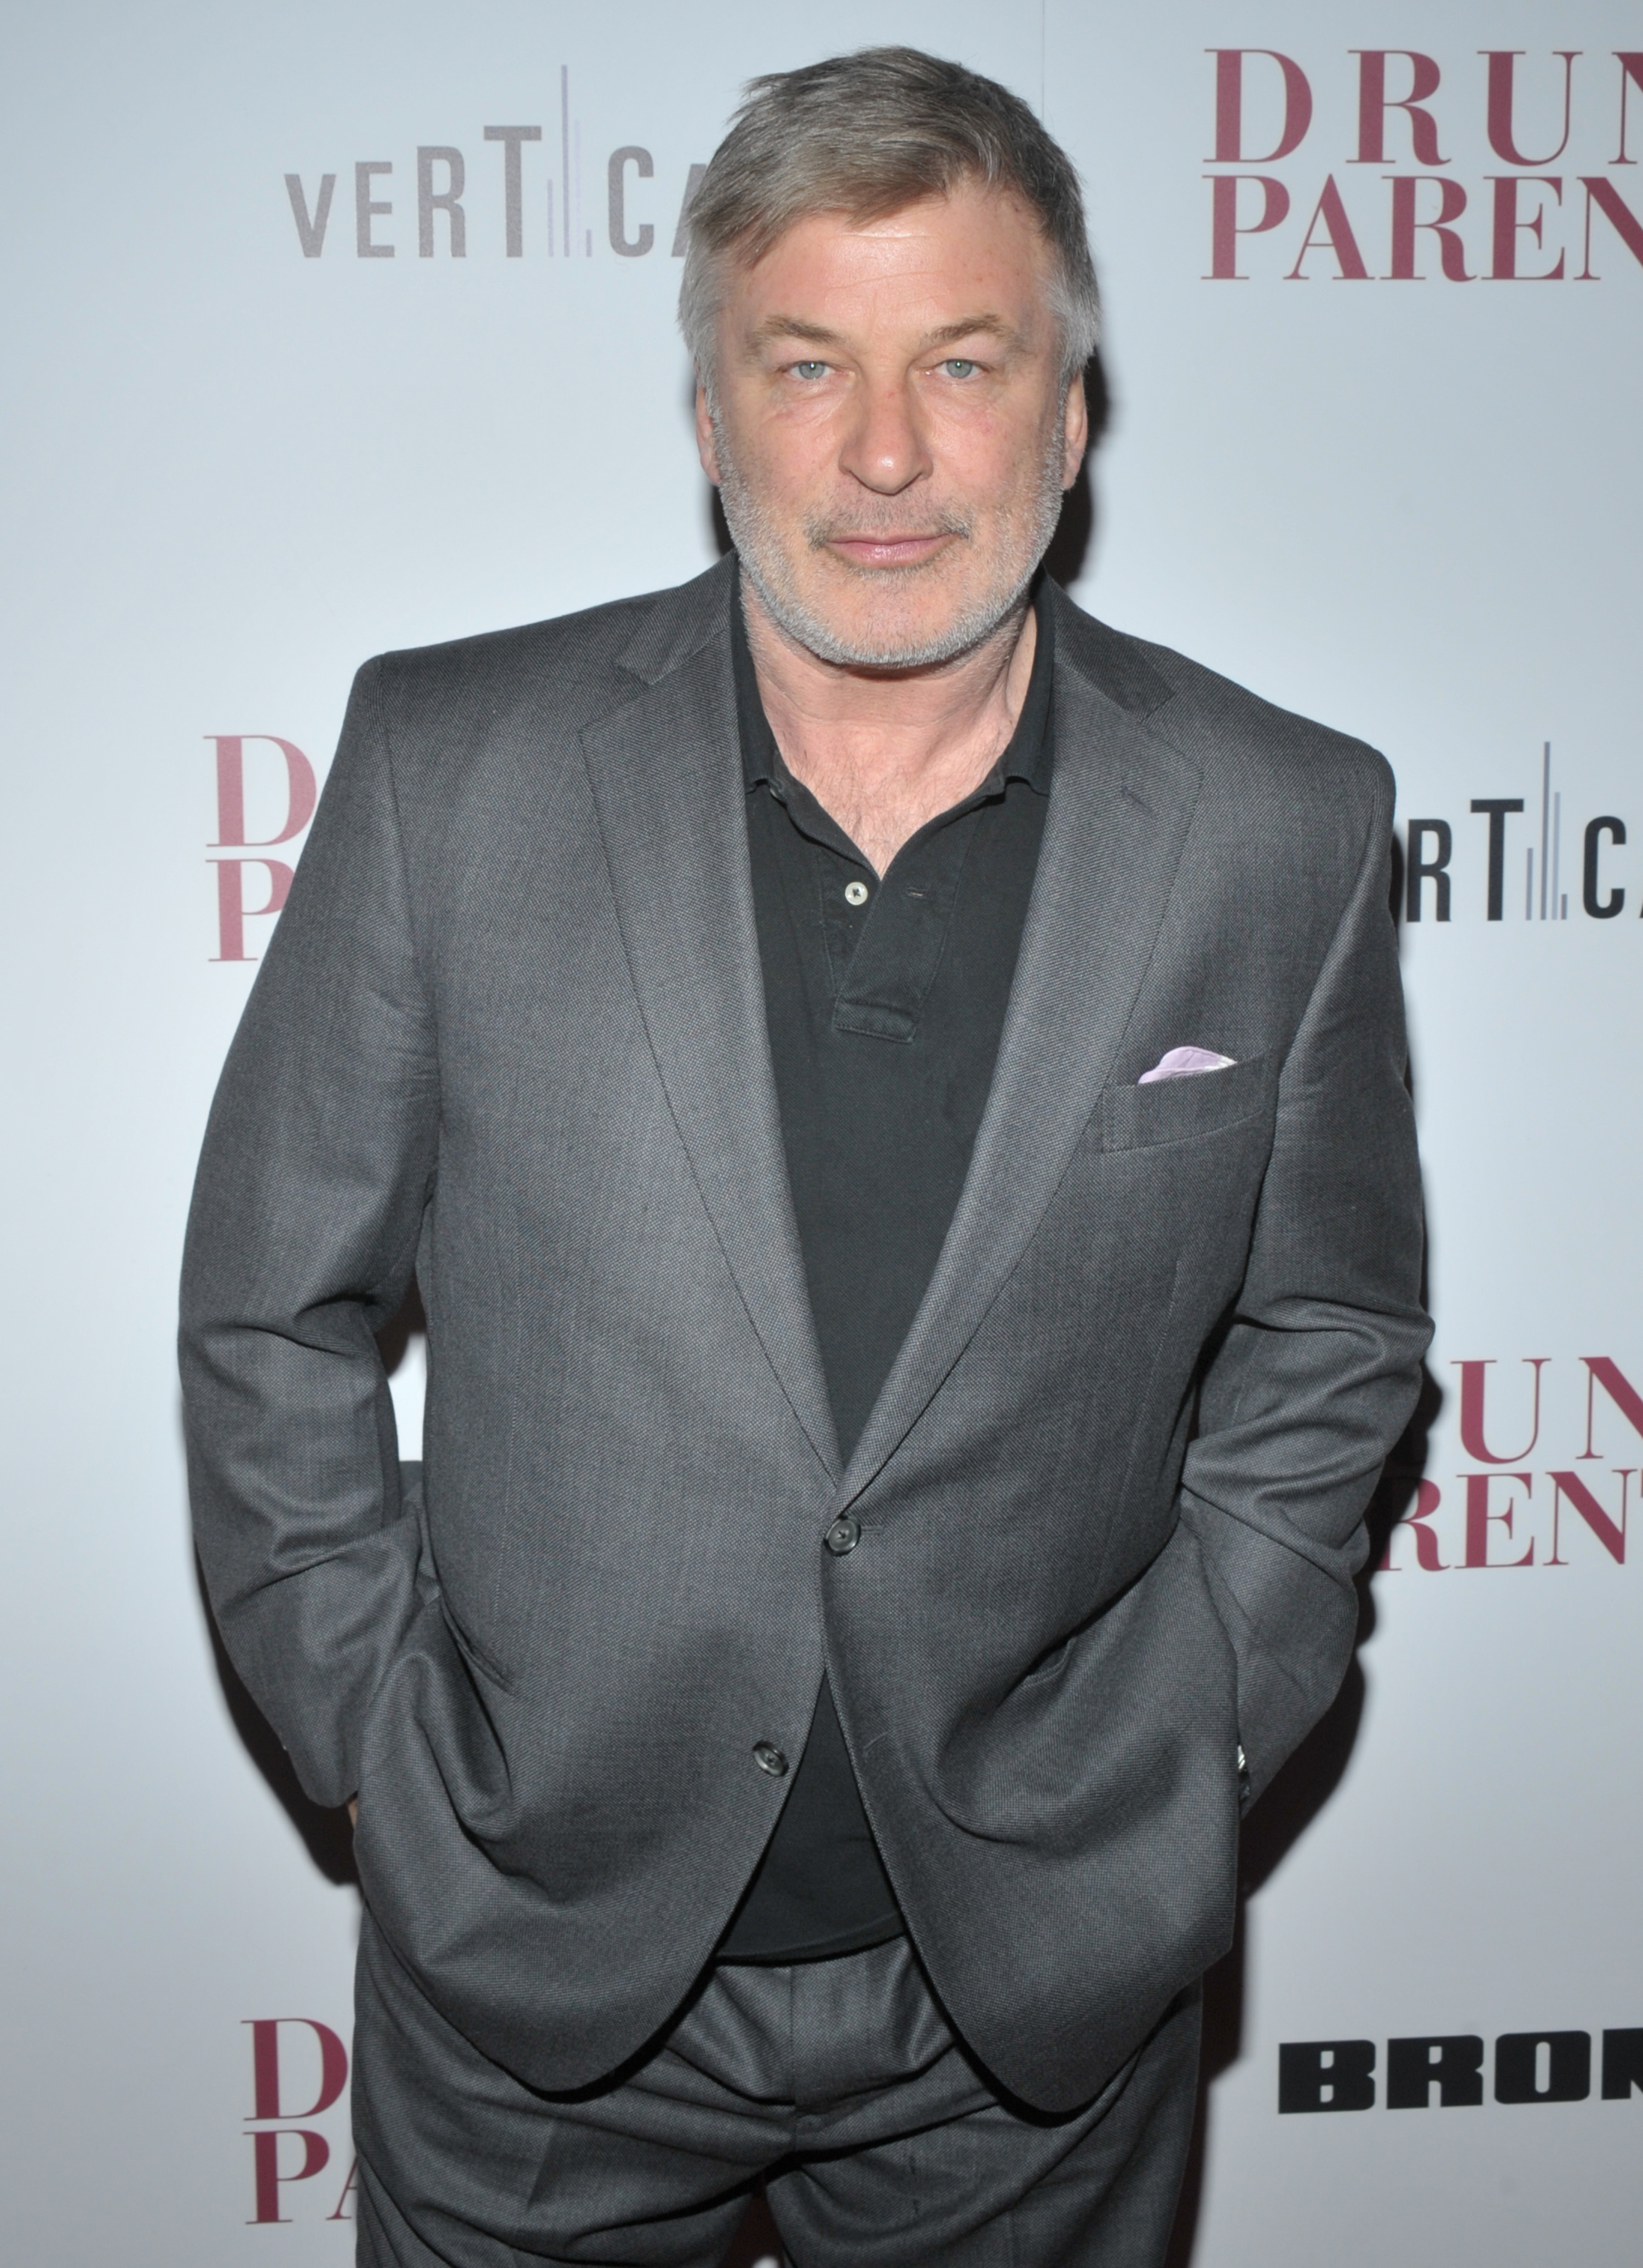 """Alec Baldwin attends the """"Drunk Parents"""" film premiere in New York City on March 4, 2019."""